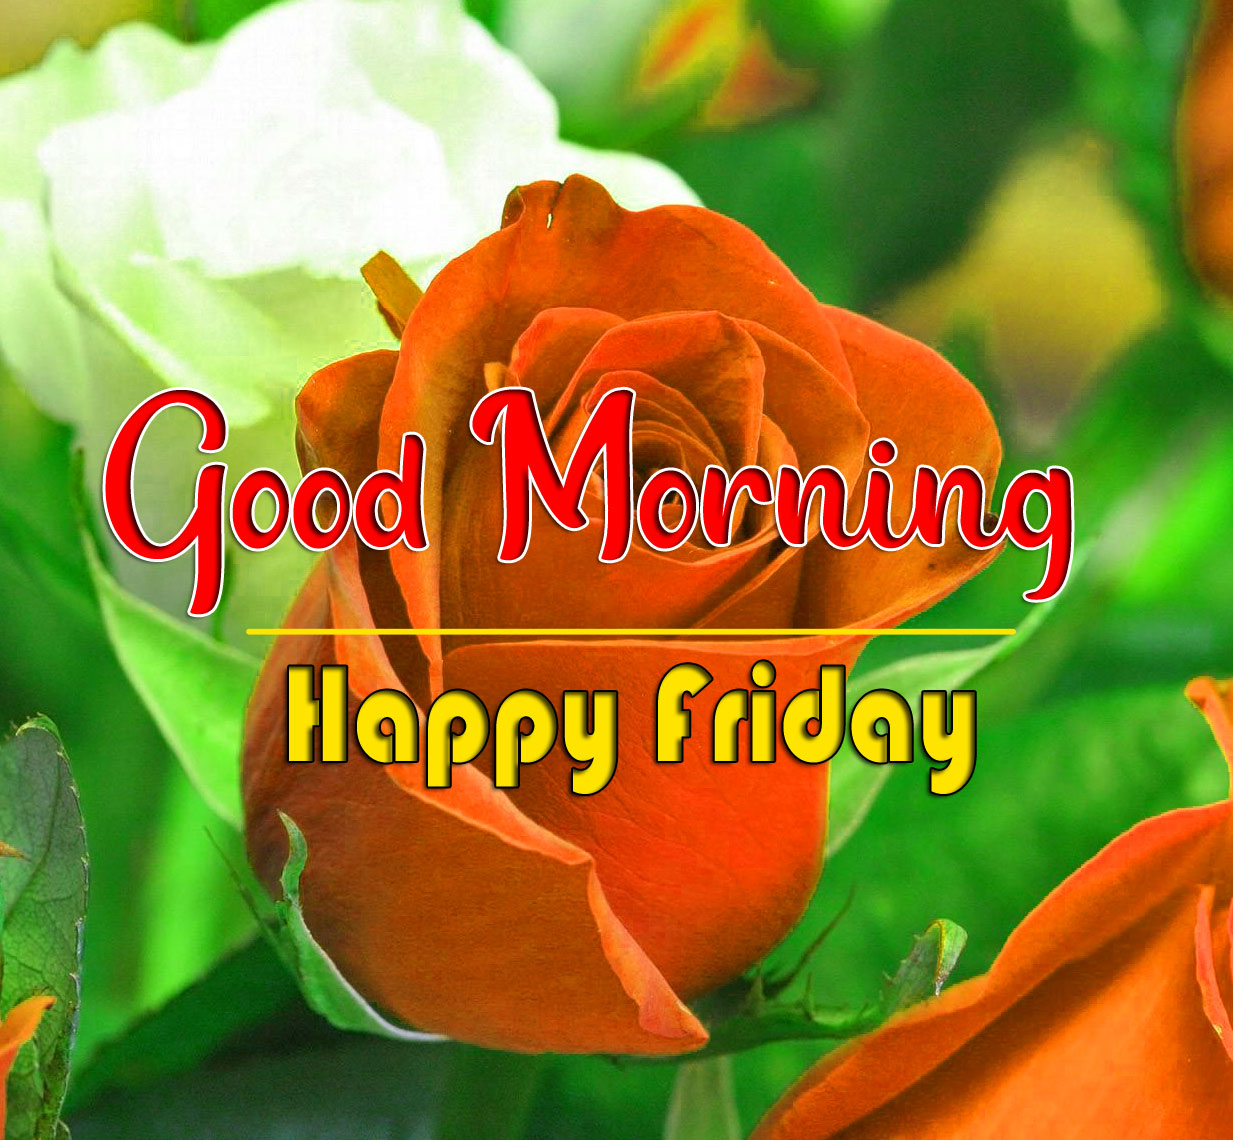 friday Good morning Pics Pictures